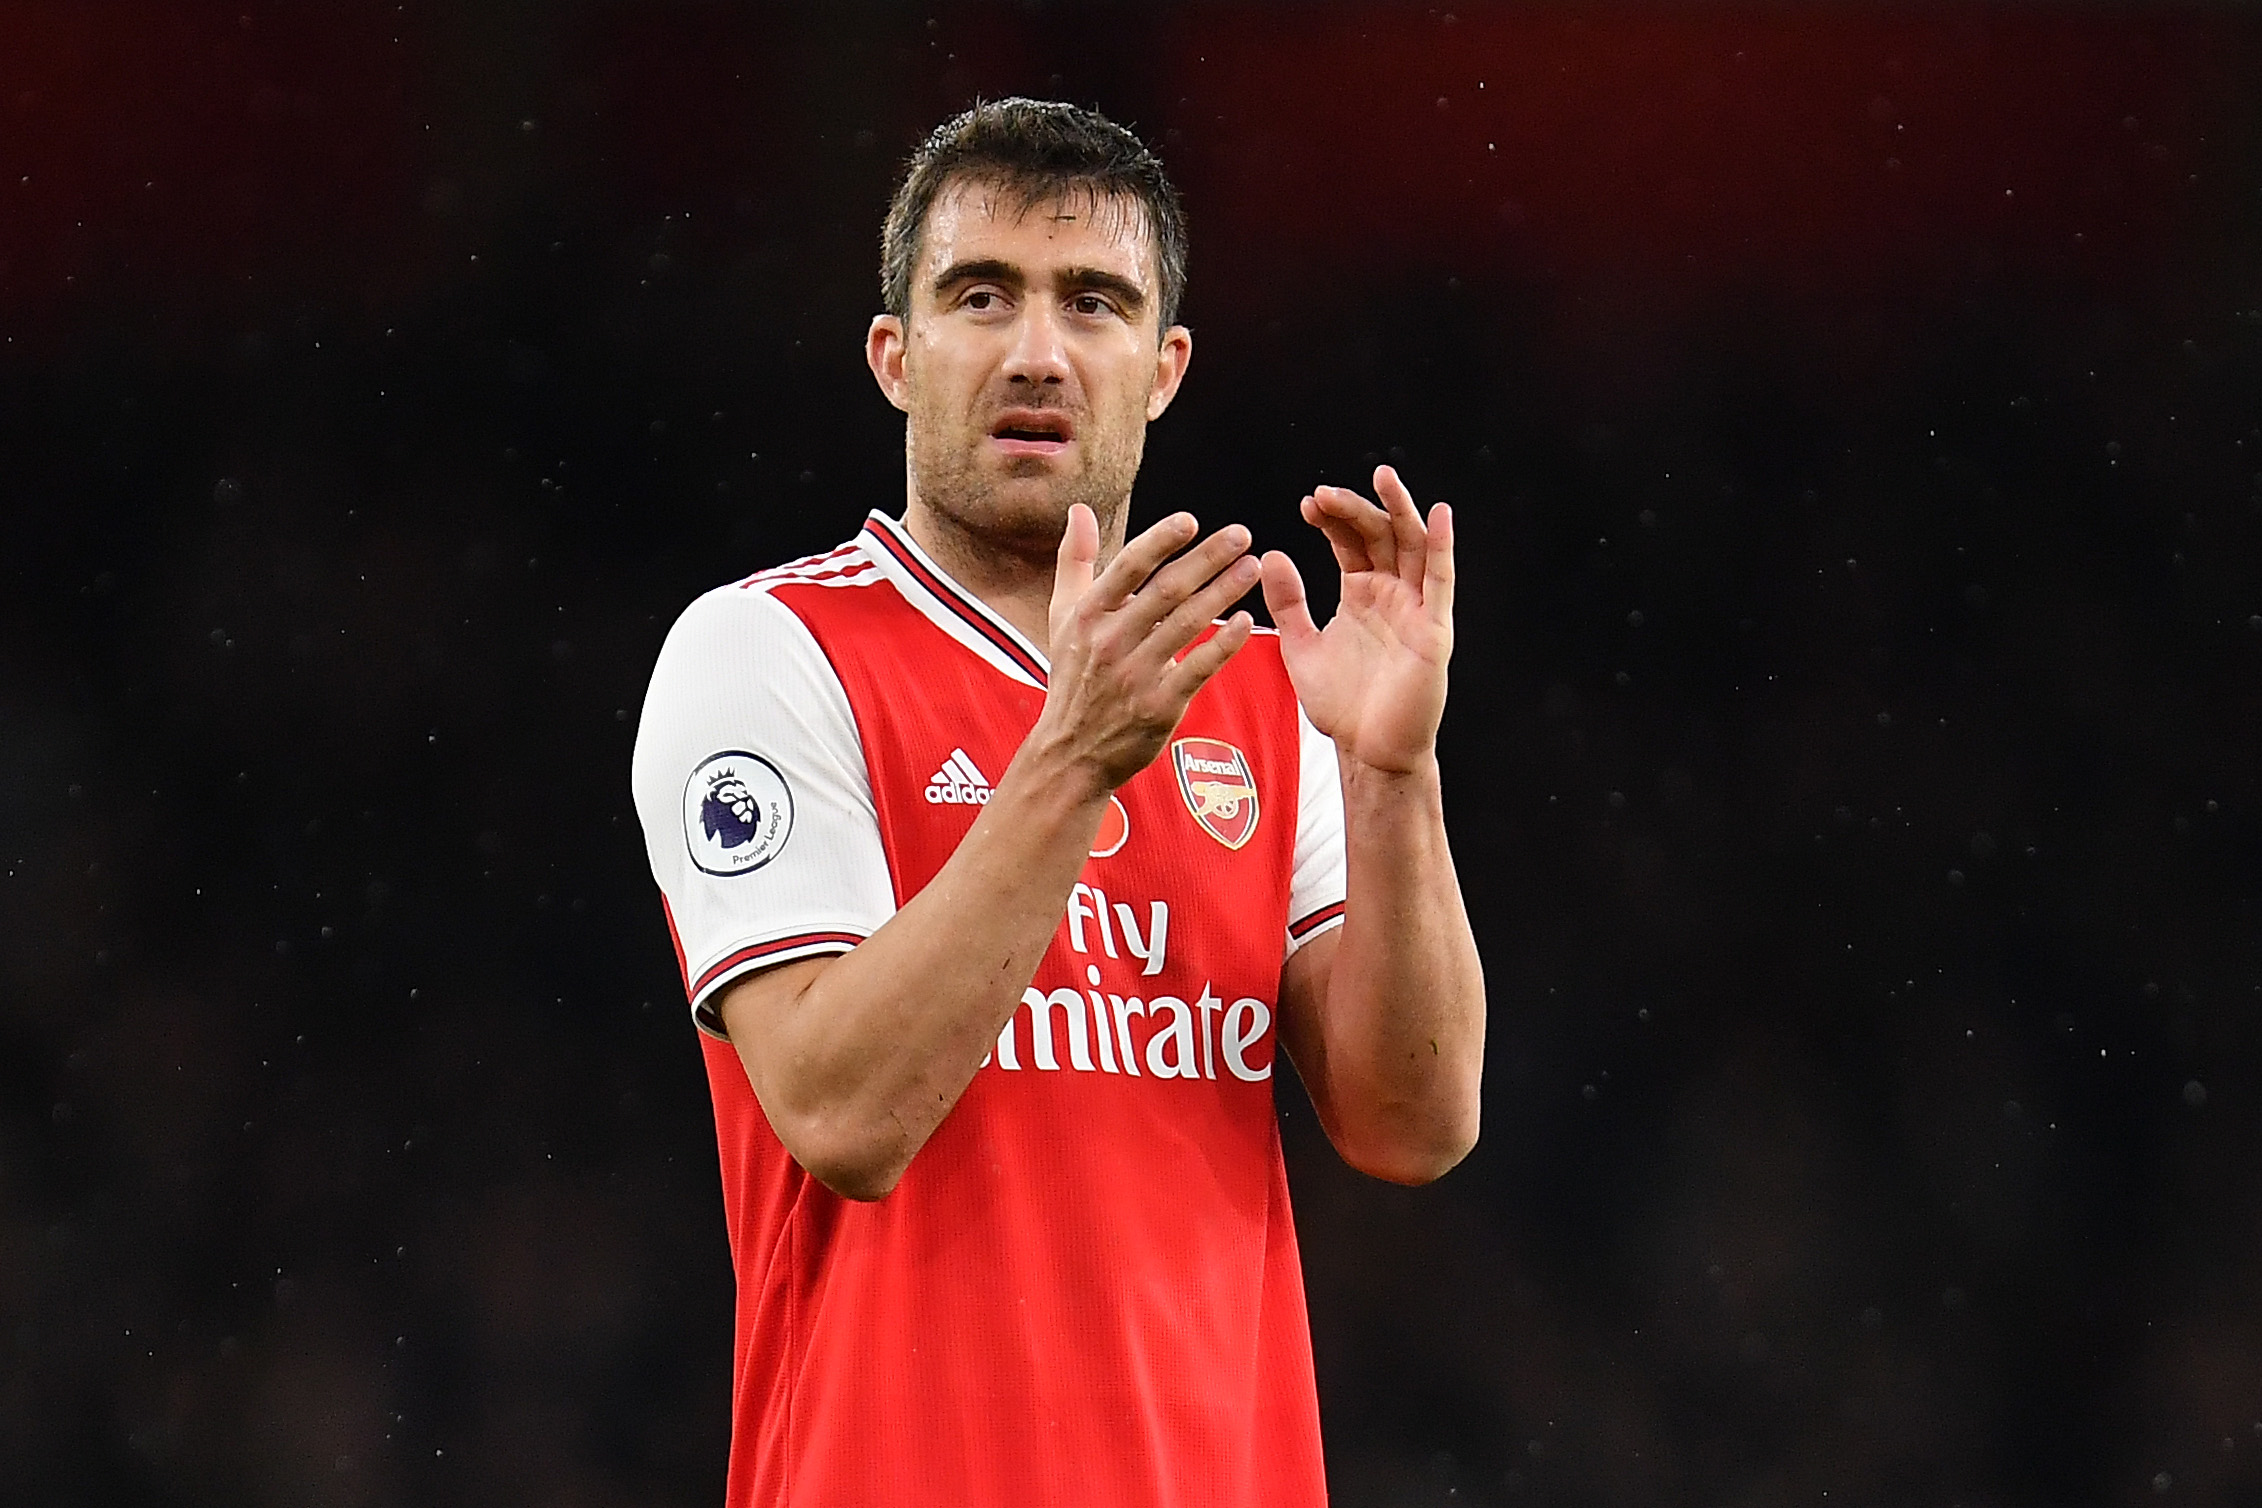 Sokratis has been asked to decide Arsenal future amid Genoa links - A good option for the Arsenal star.